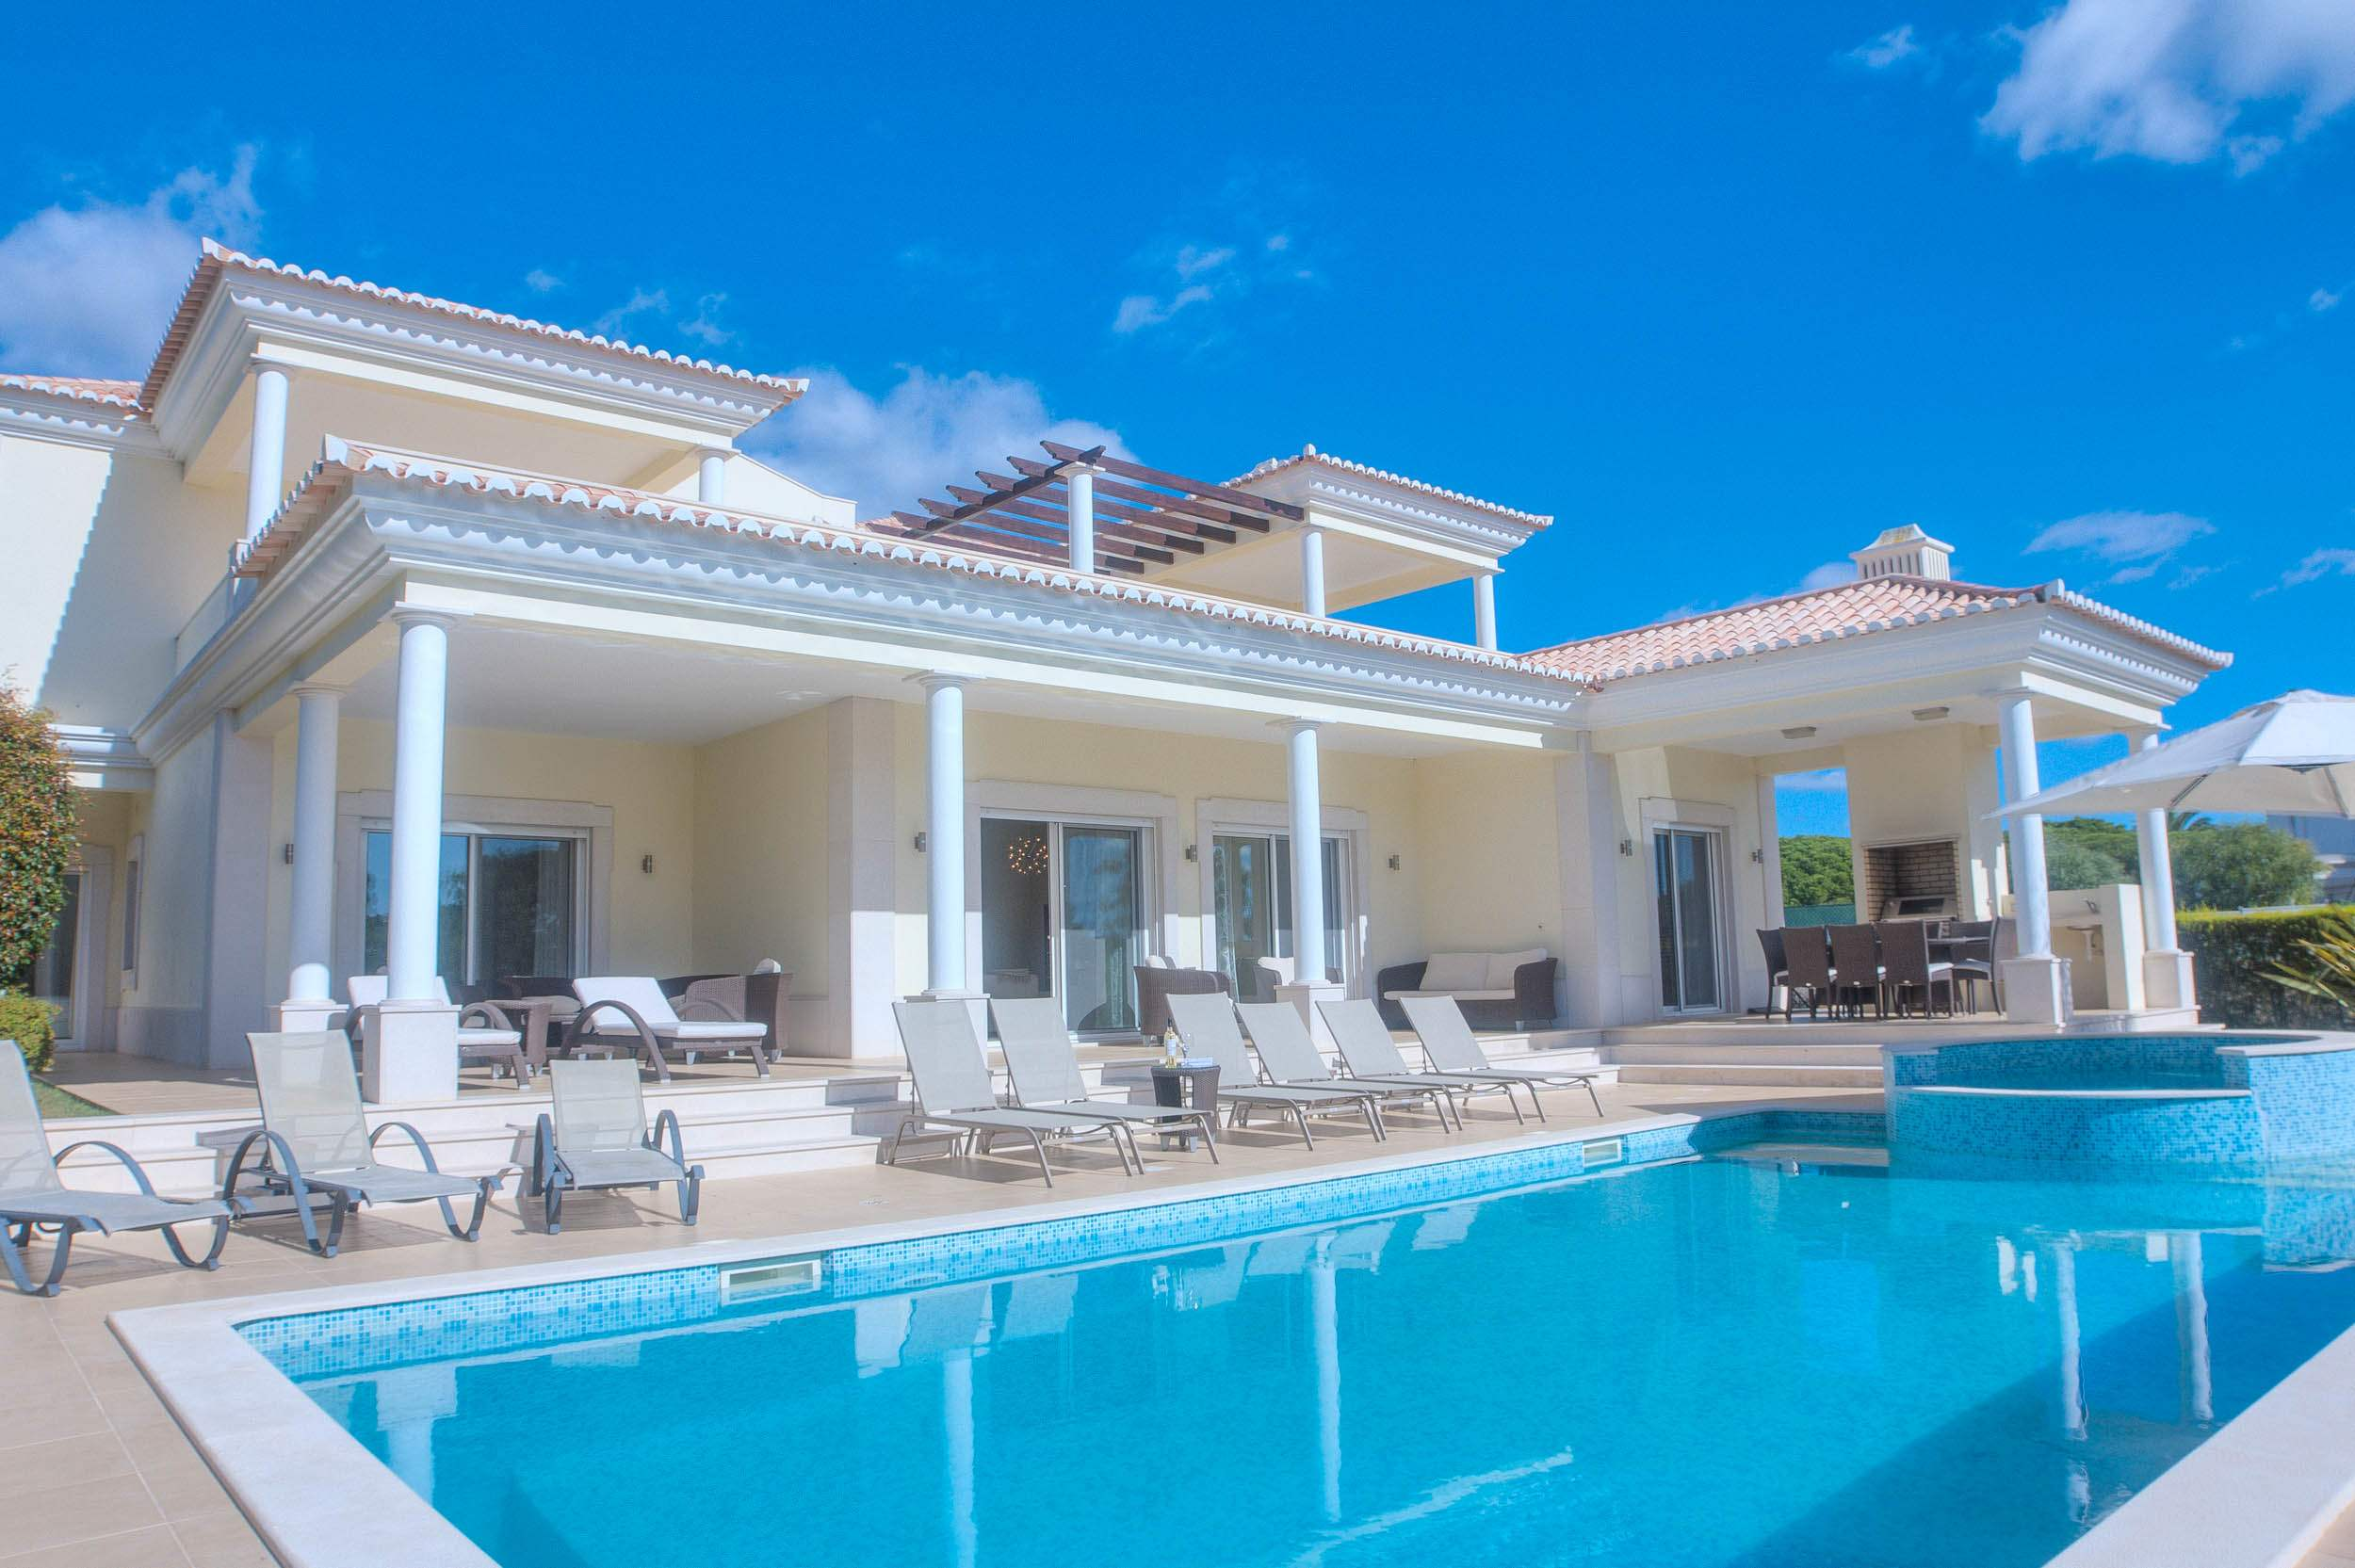 Villa Vida Doce, 6 bedroom villa in Vilamoura Area, Algarve Photo #1